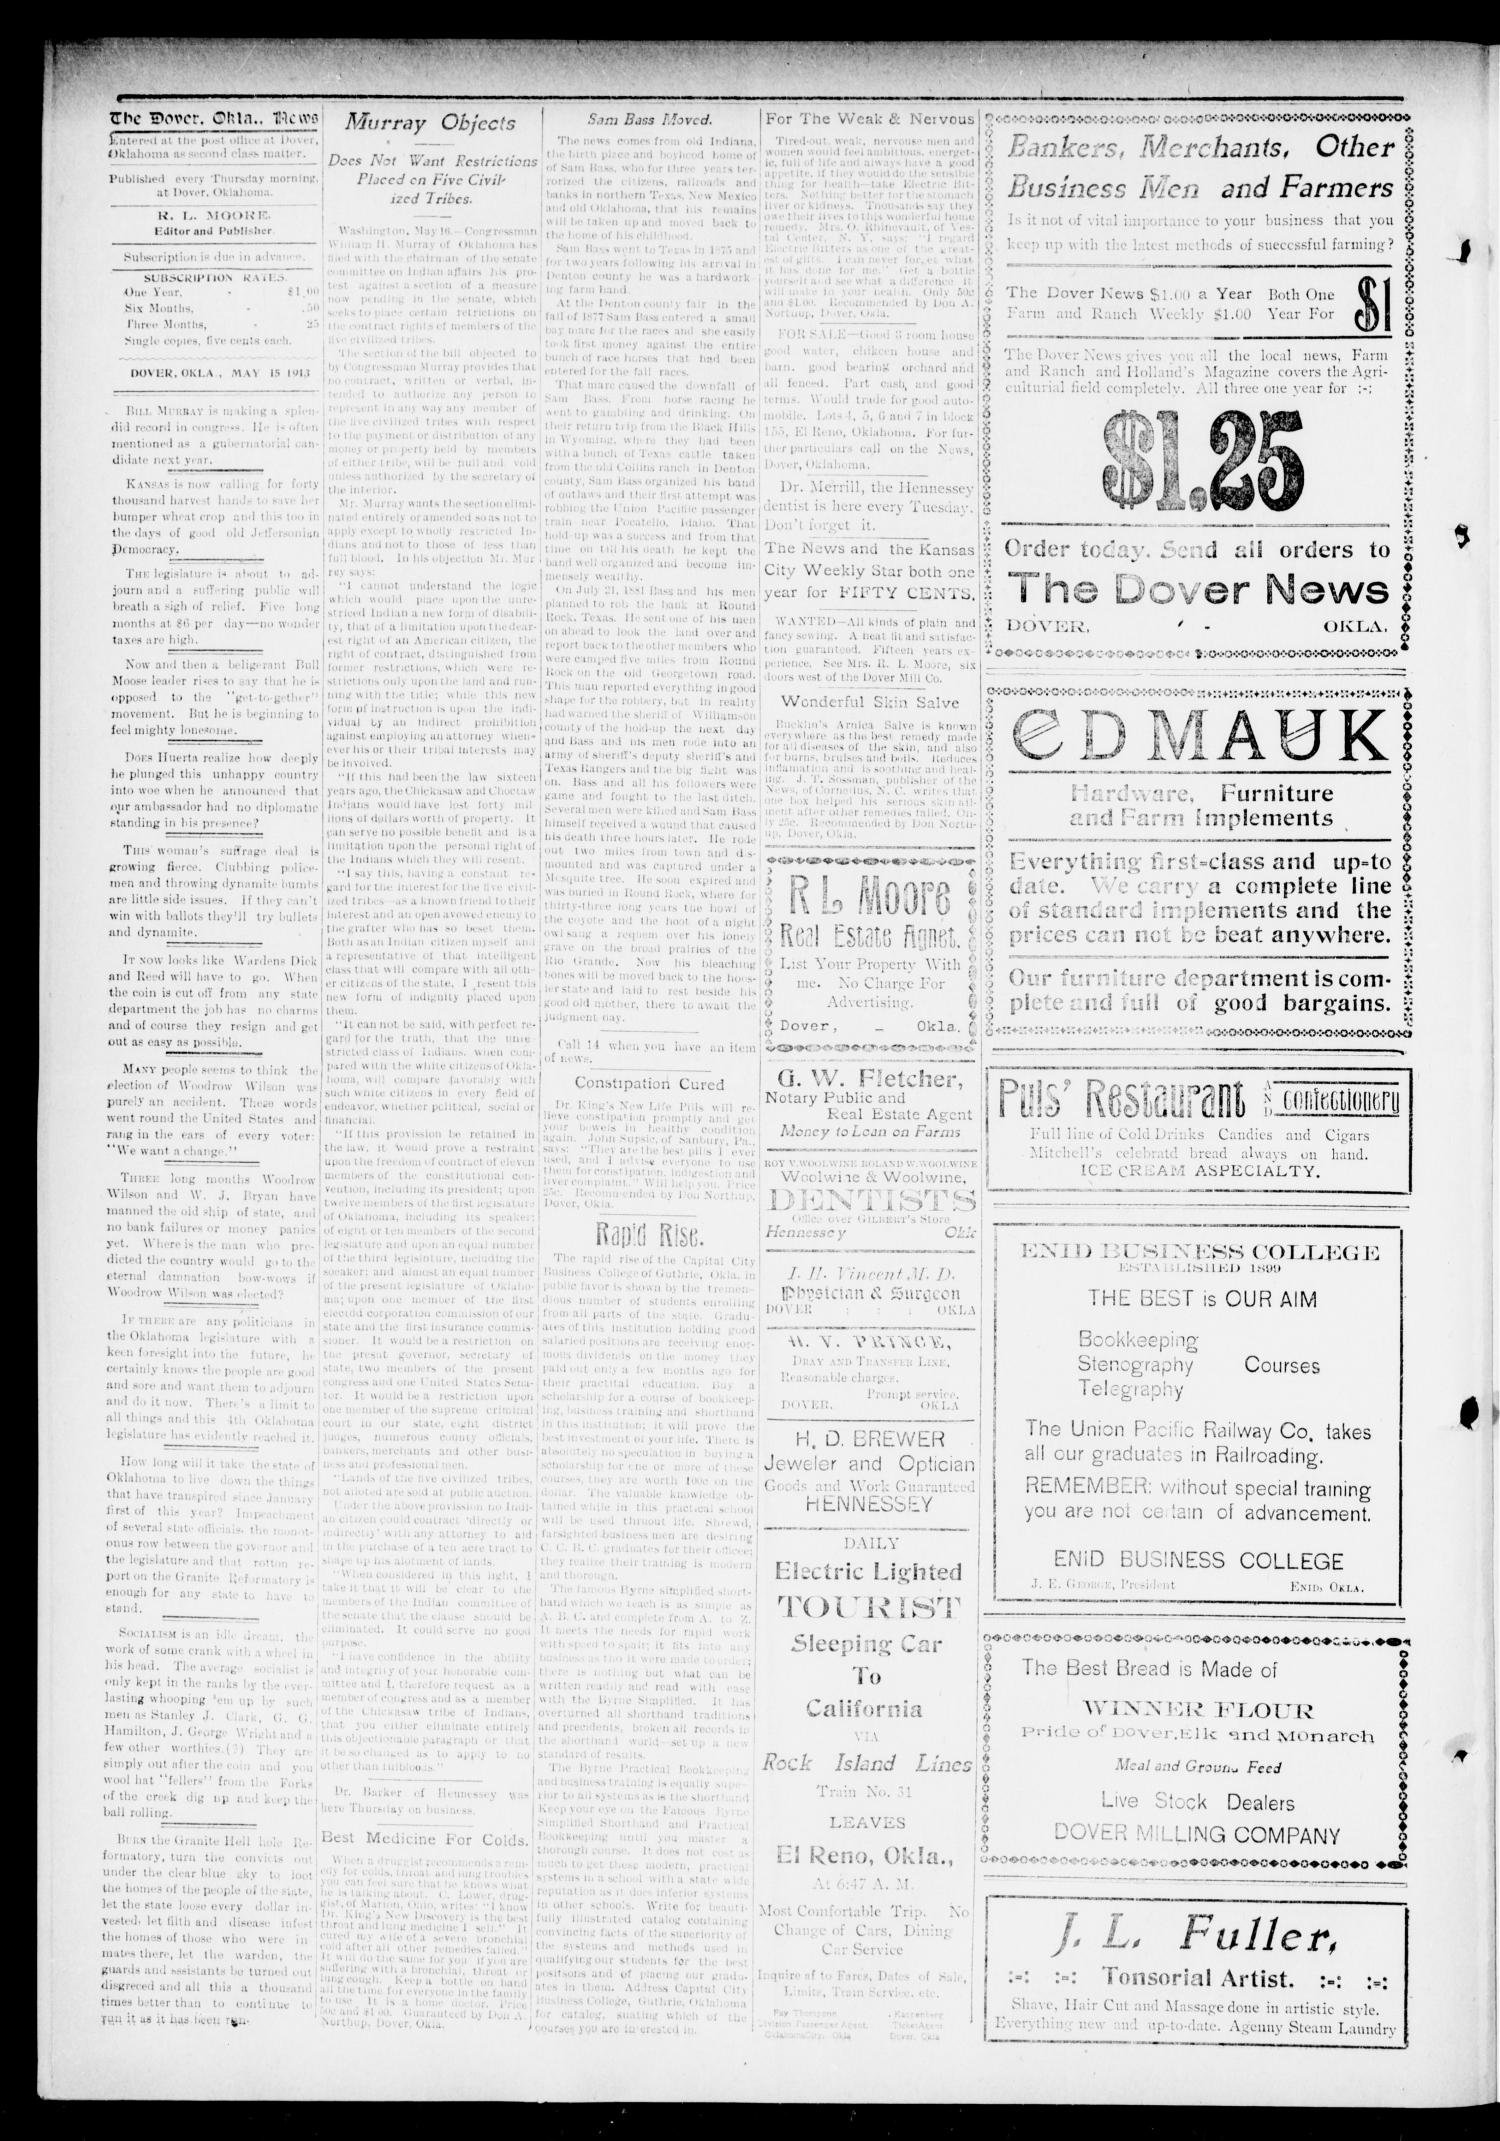 The Dover News Dover Okla Vol 13 No 10 Ed 1 Thursday May 15 1913 Page 4 of 8 The Gateway to Oklahoma History